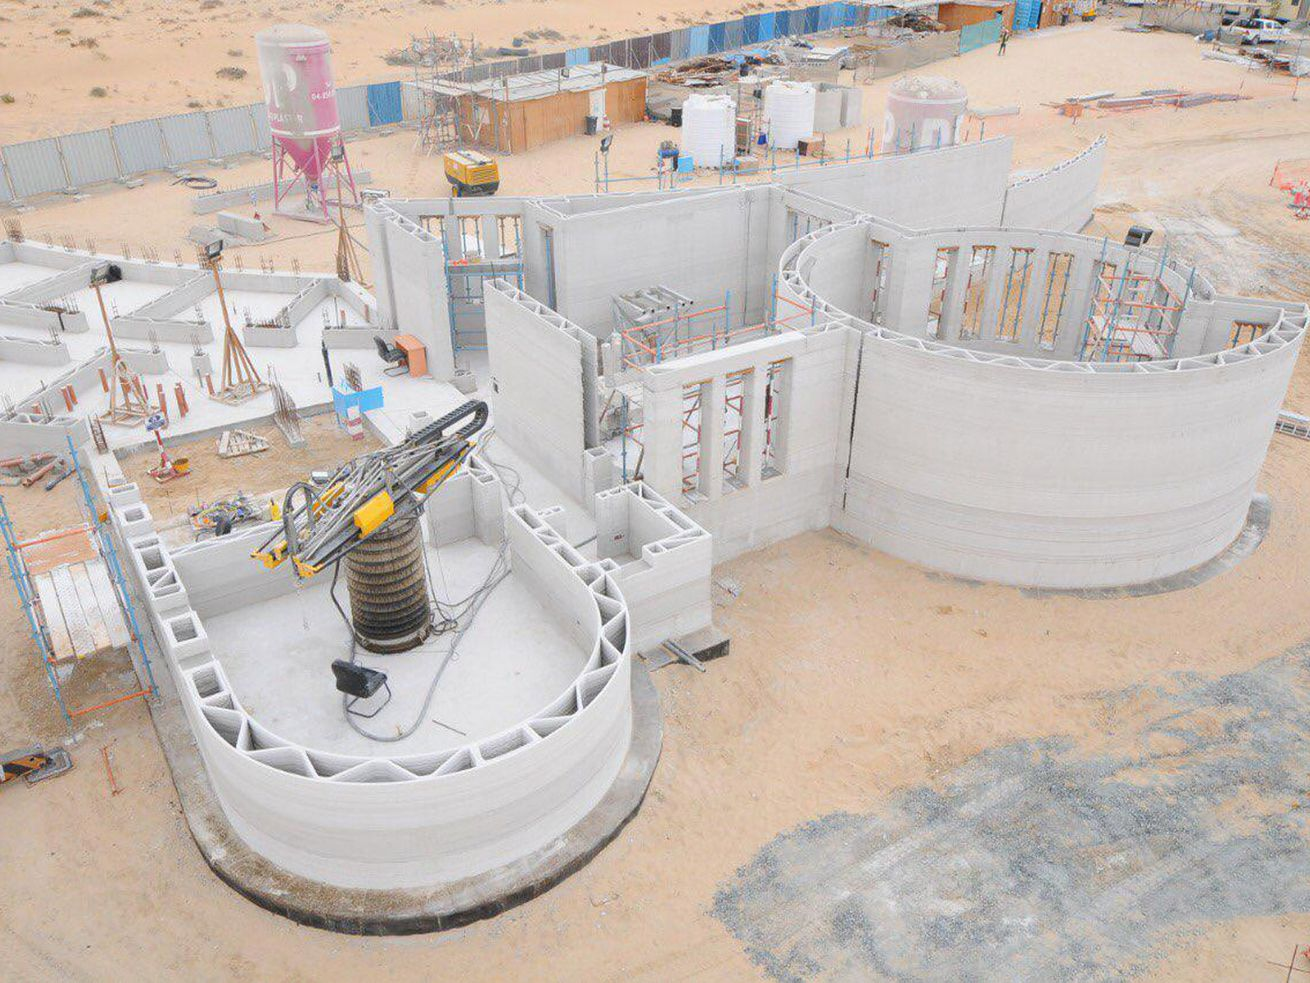 World?s largest 3D-printed building completed in Dubai